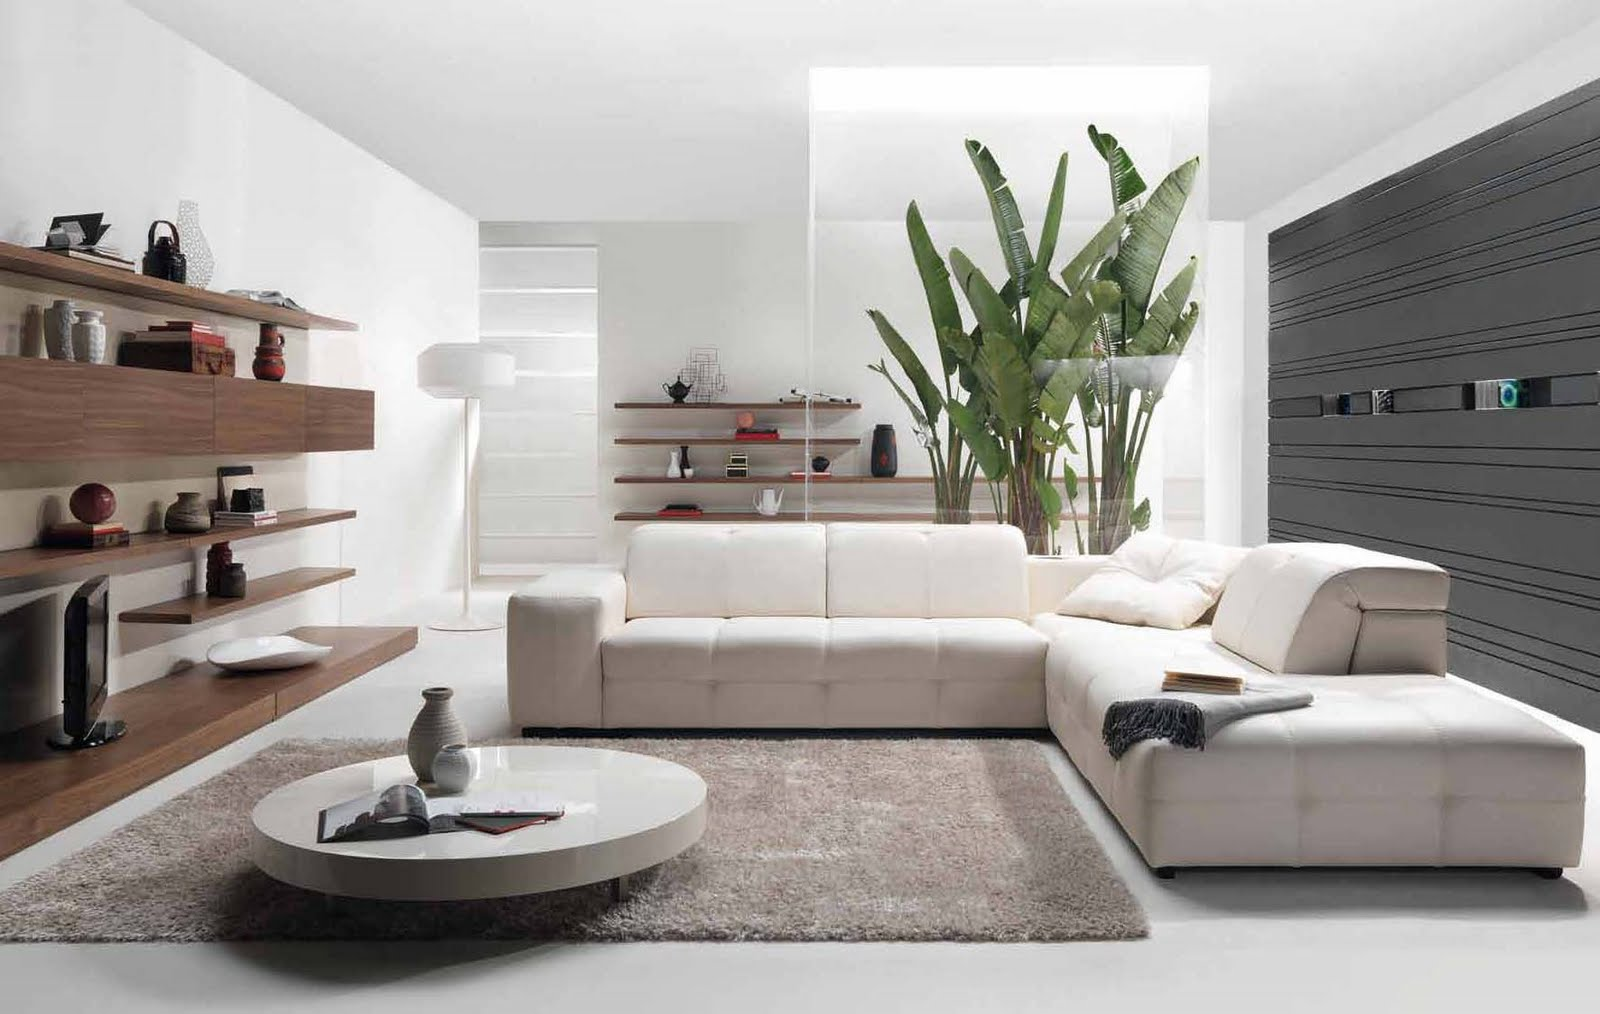 Future house design modern living room interior design for Modern house living room